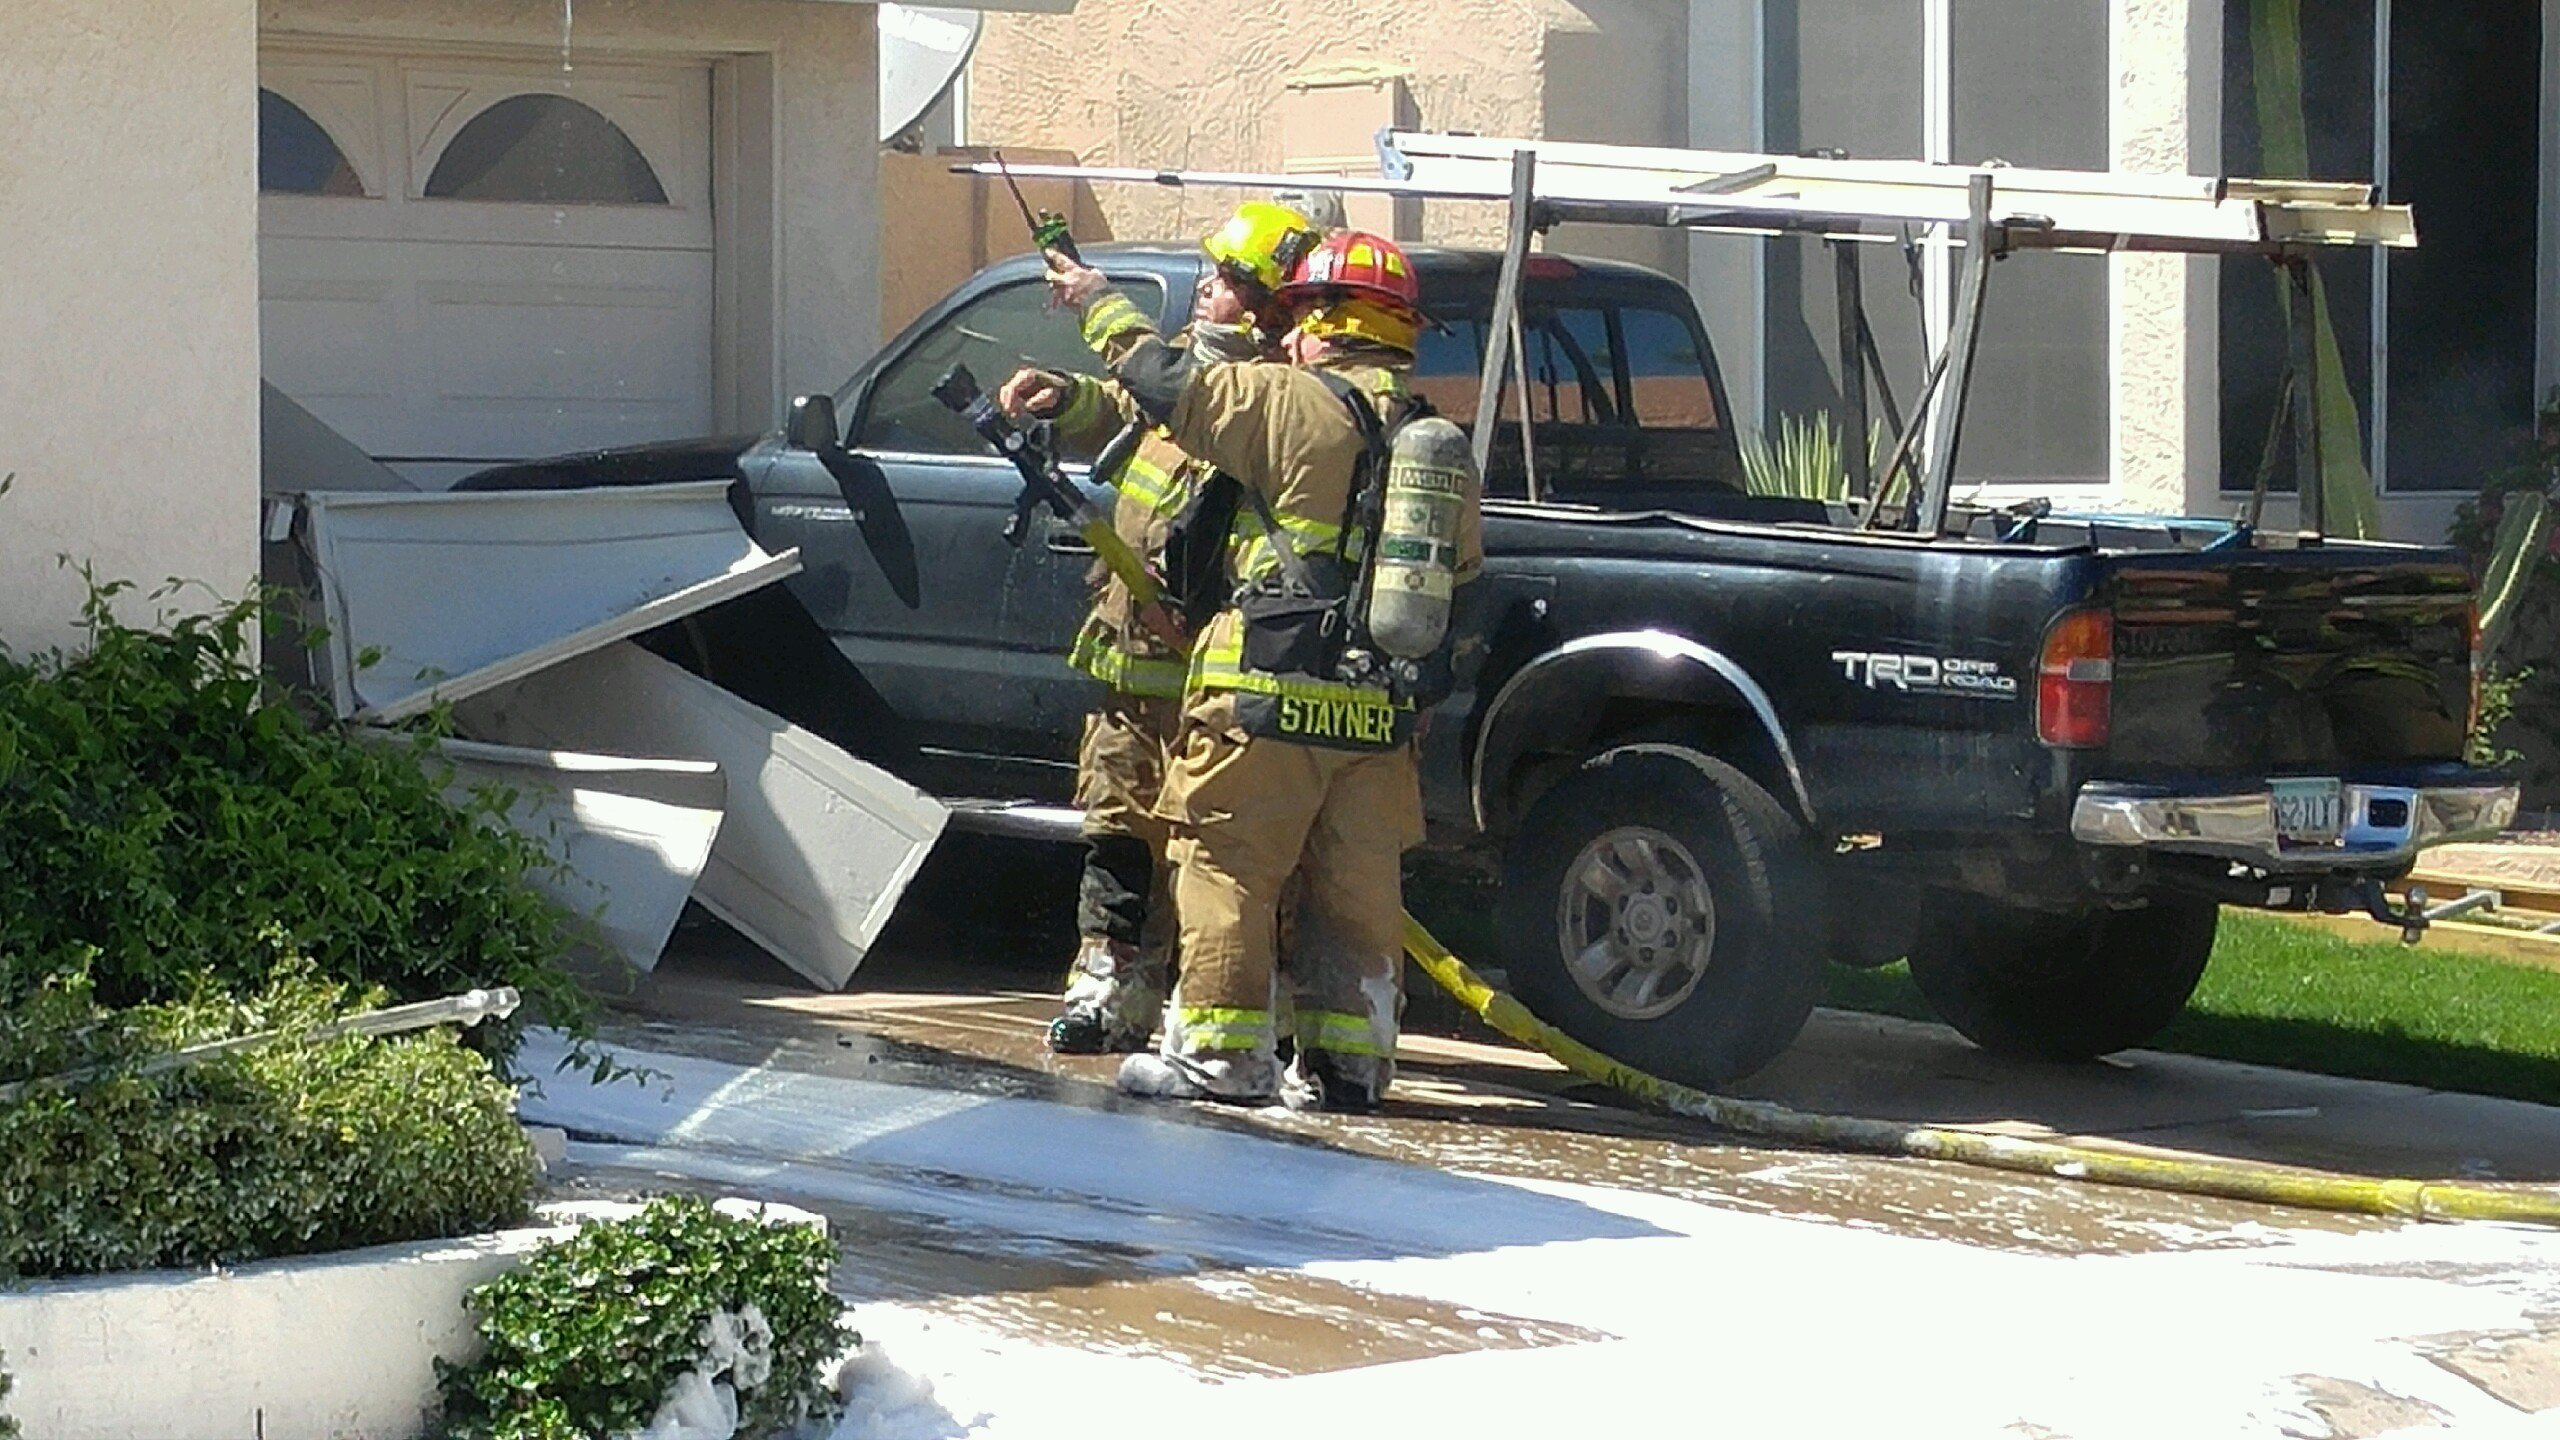 Phoenix Firefighters work on hot spots on a house fire Sunday.  19 March 2017[SOURCE: 3TV/CBS5 News]